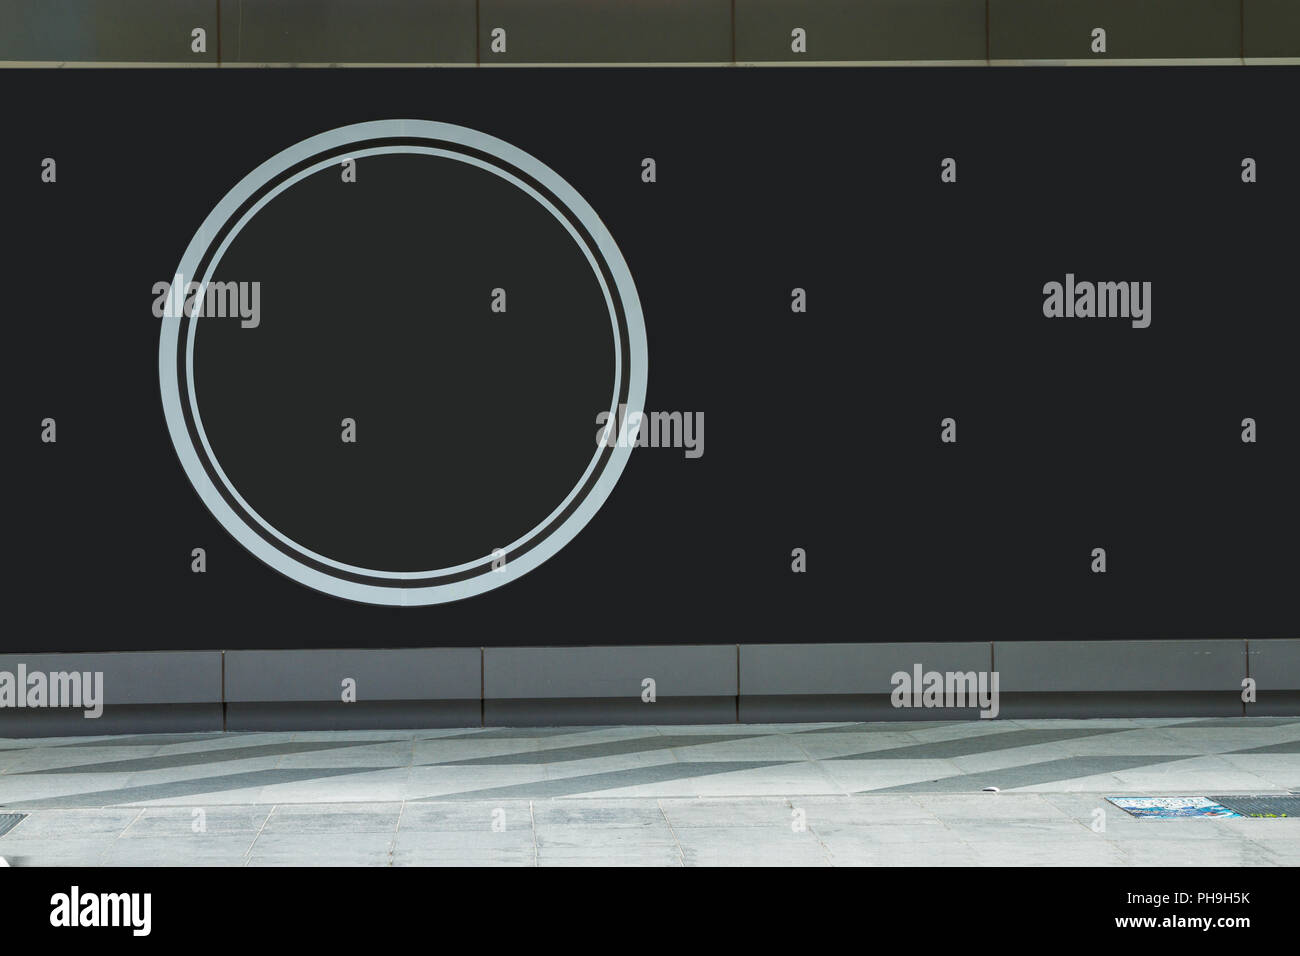 Black background for information of advertizing. - Stock Image